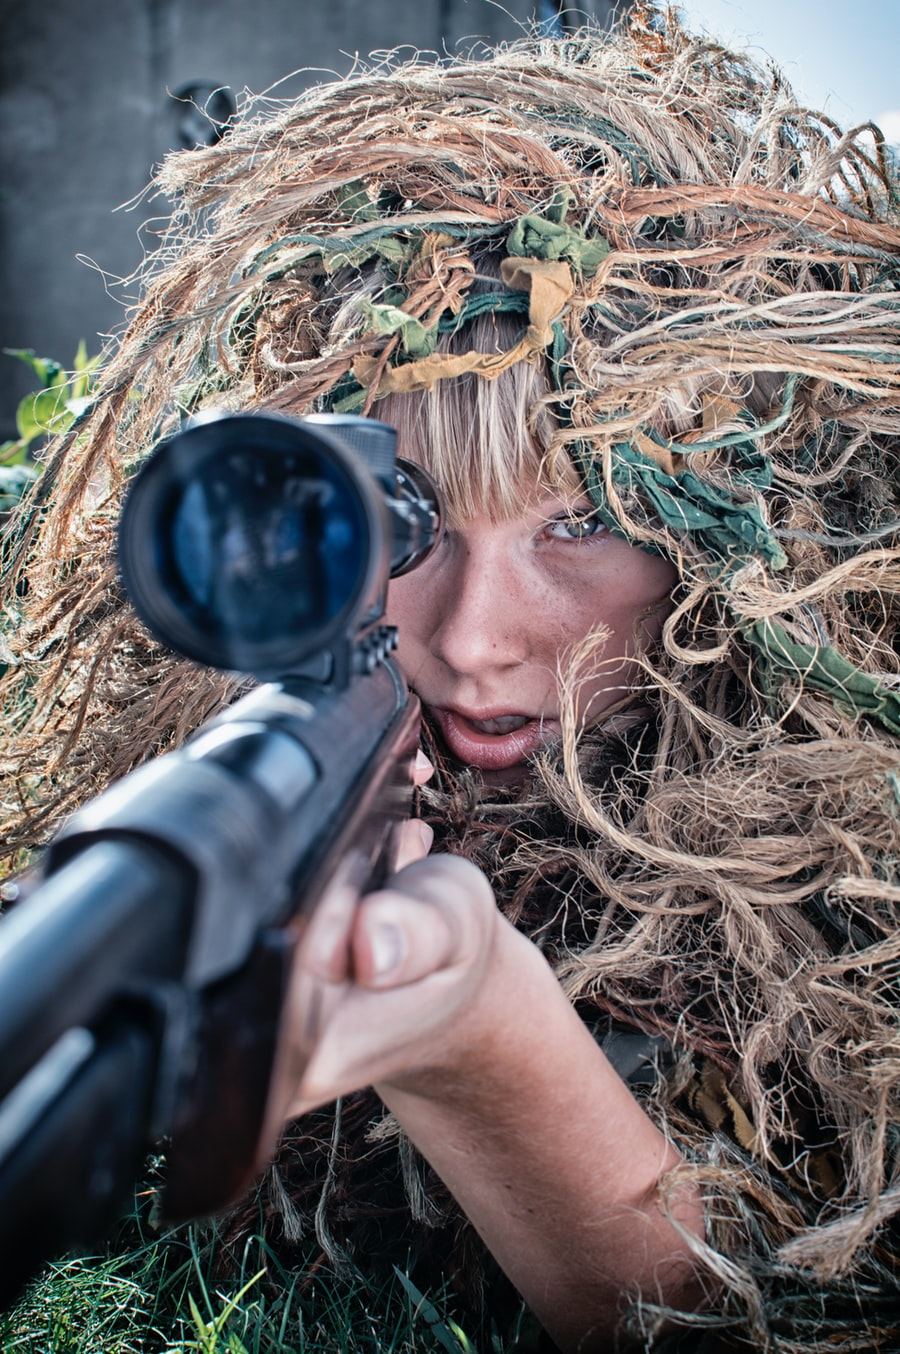 A woman in camouflage points a sniper rifle at a location off-camera.